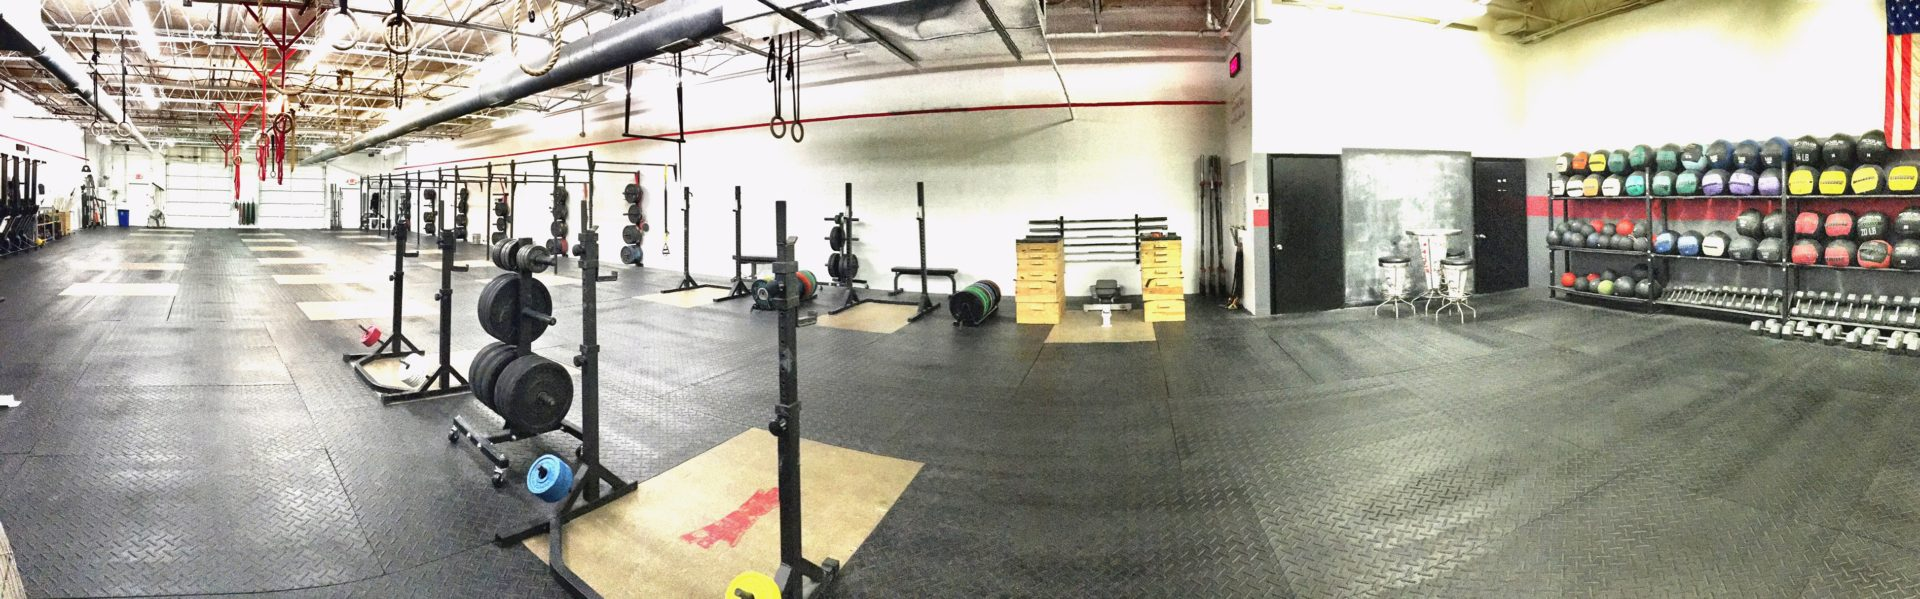 Olympic Weightlifting Coach, Barbell Club in Tampa, Florida